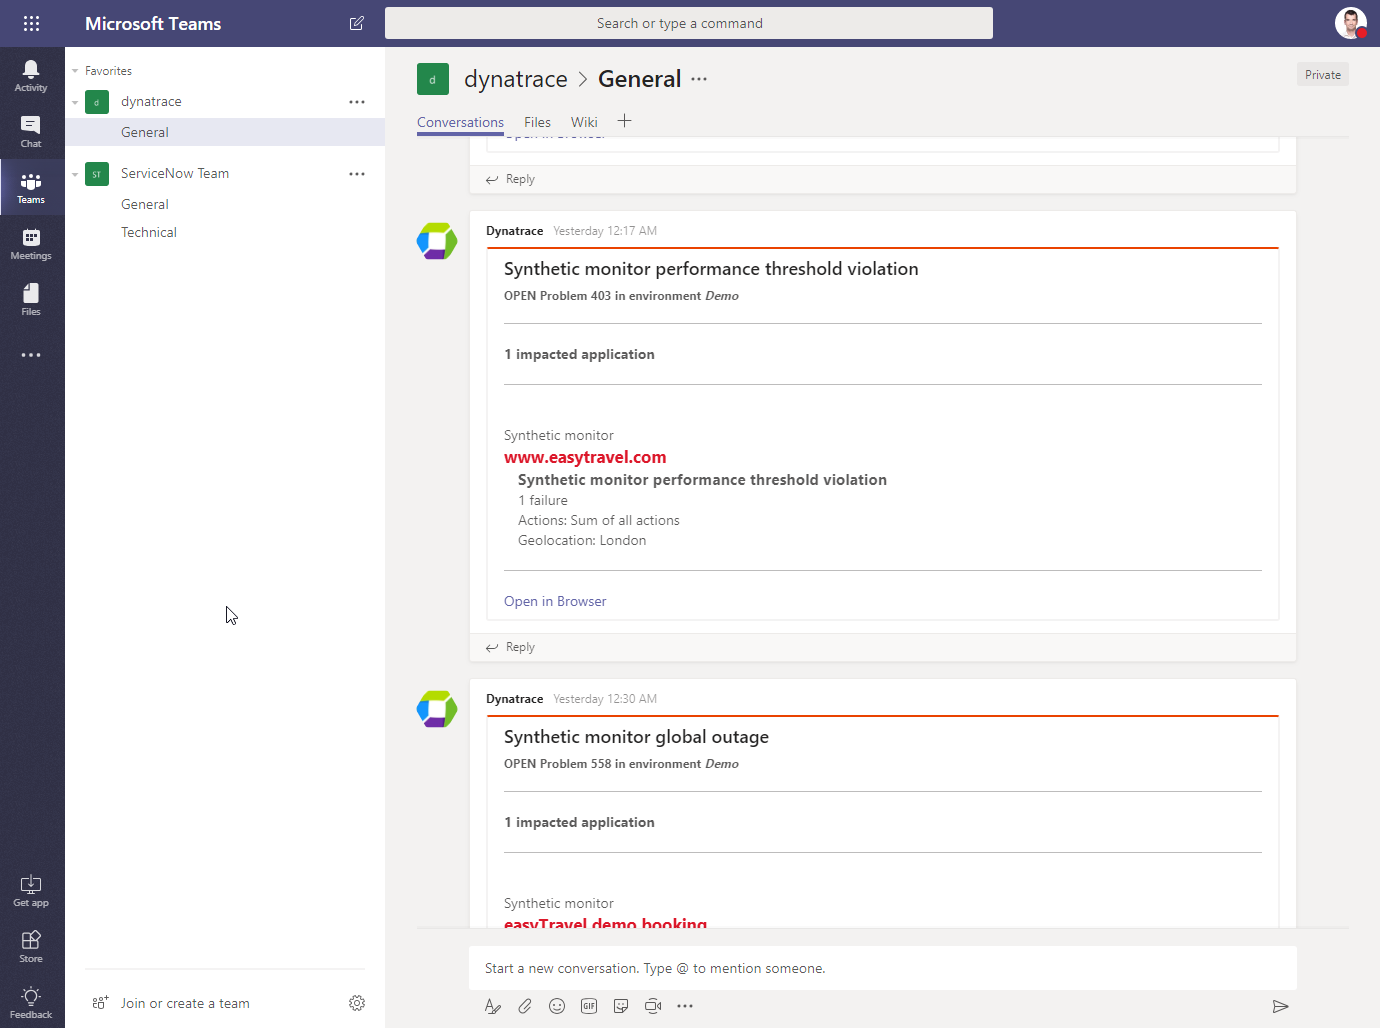 Push Dynatrace-detected problems to your Microsoft Teams channels